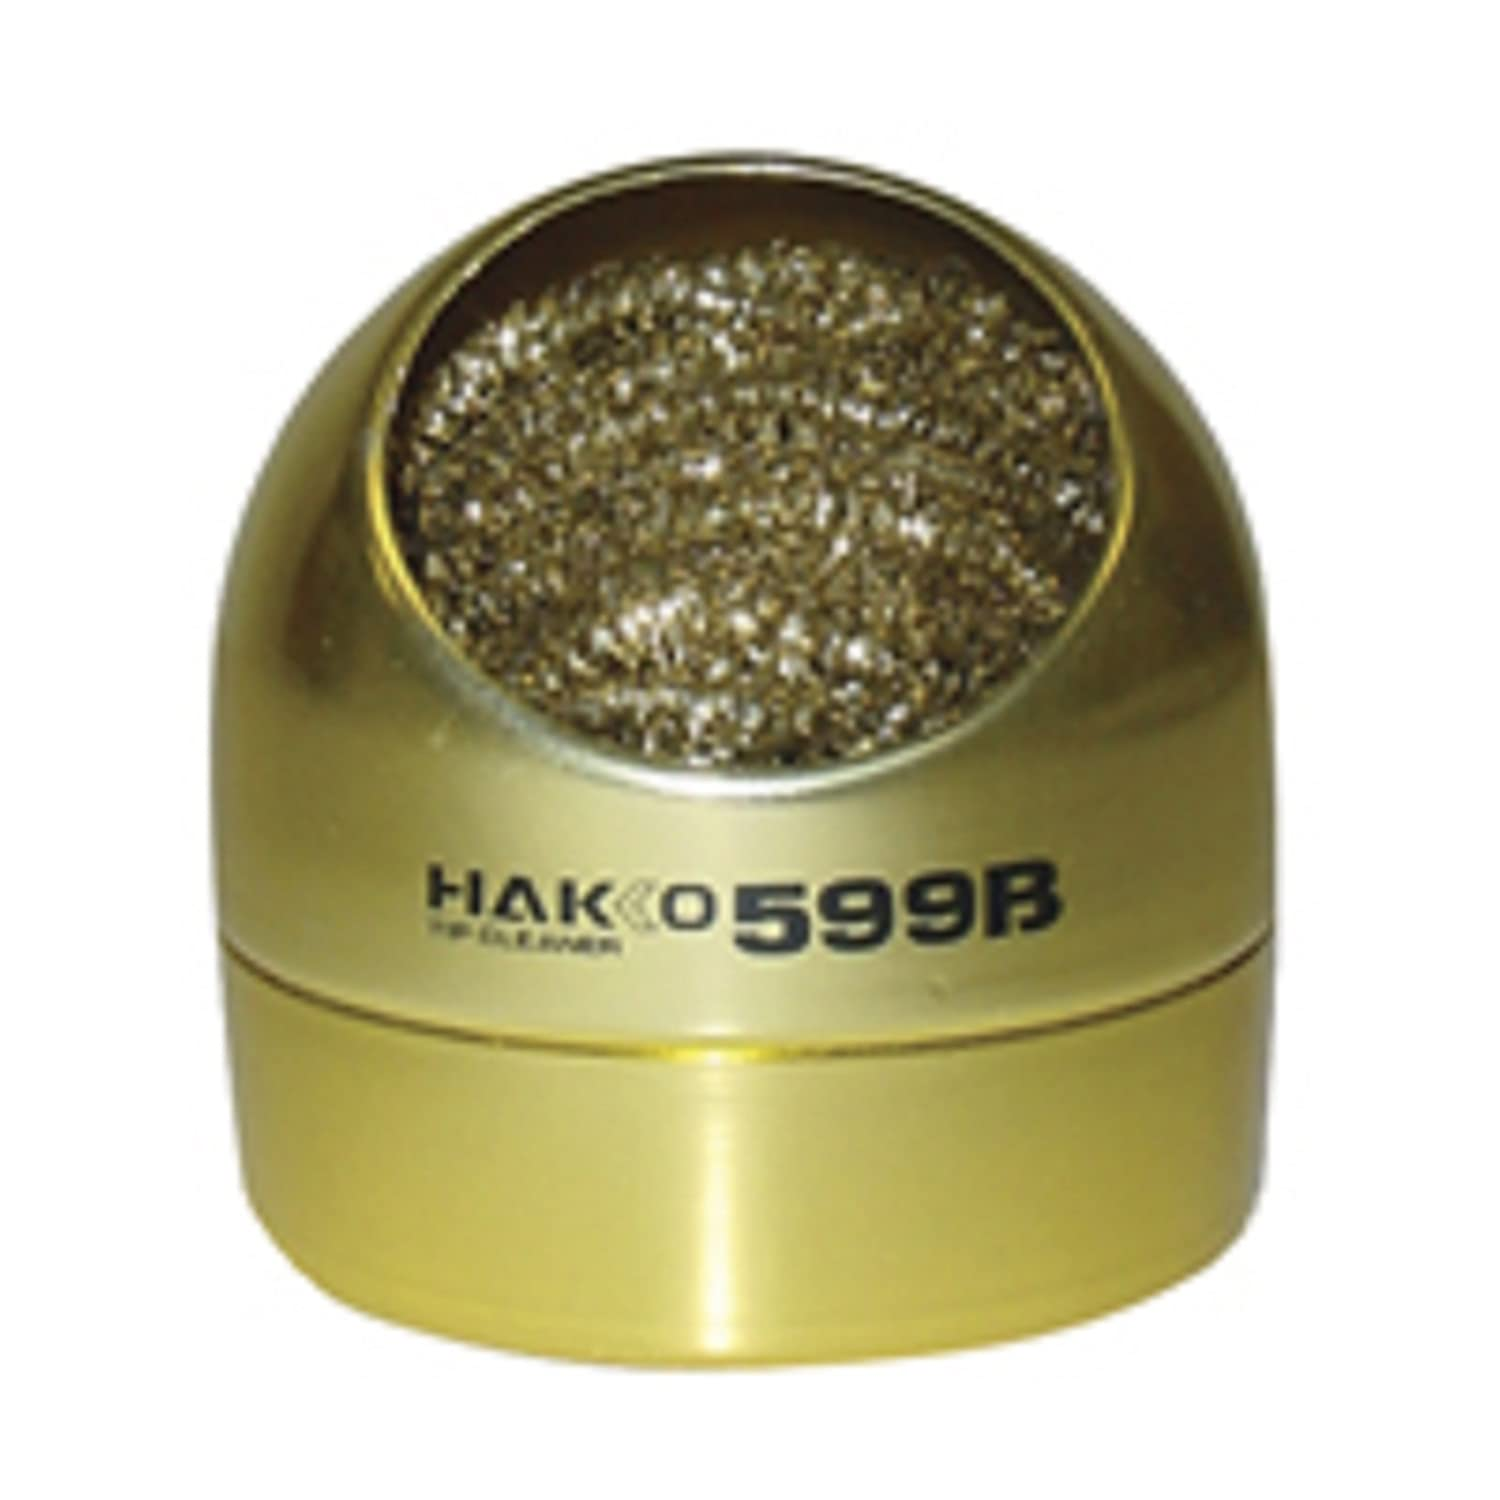 Hakko Soldering Iron Tip Cleaner and Holder